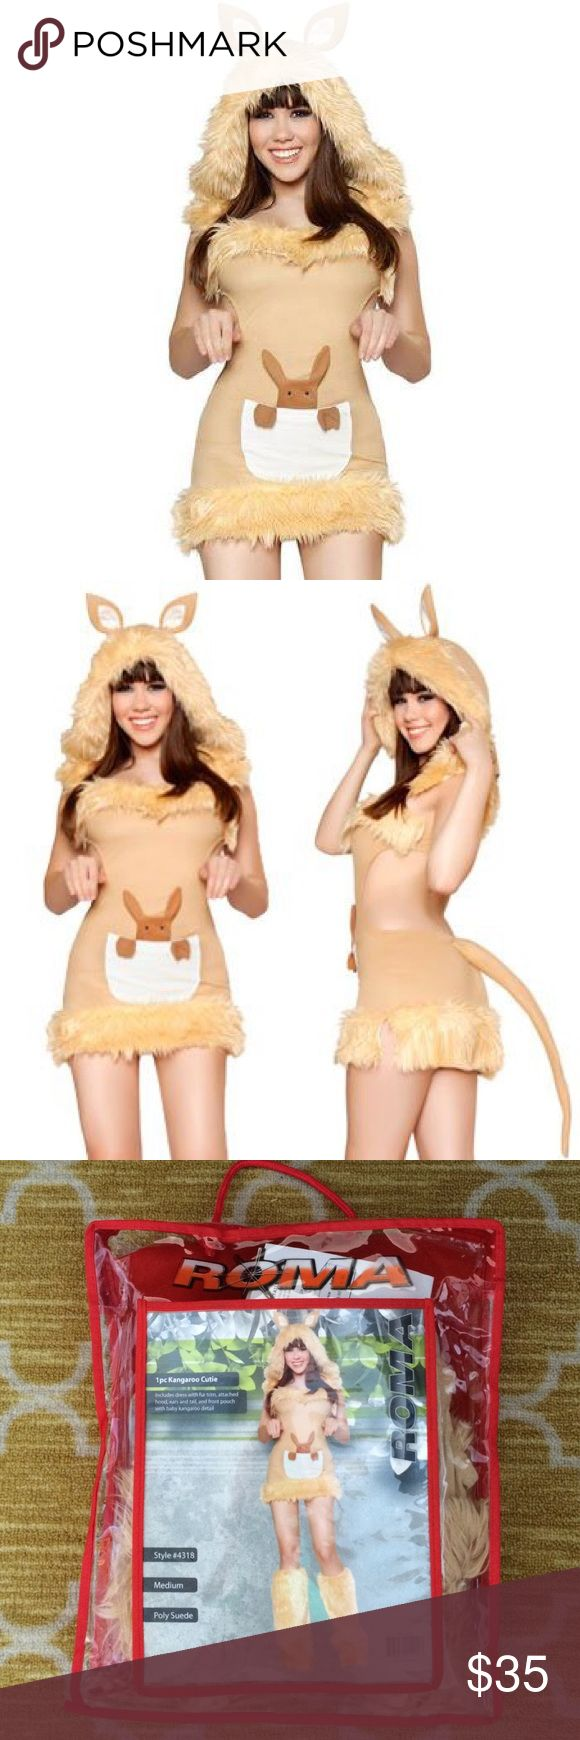 Sexy Kangaroo Cutie Halloween Costume New! In original packaging. Adult female kangaroo costume. Soft suede. Hood with ears, front pocket, fur trim. The back is cut out and open. Purchased for a themed party and didn't end up wearing it. *boots were not included in the package-you had to buy them separate and I chose not to* Other